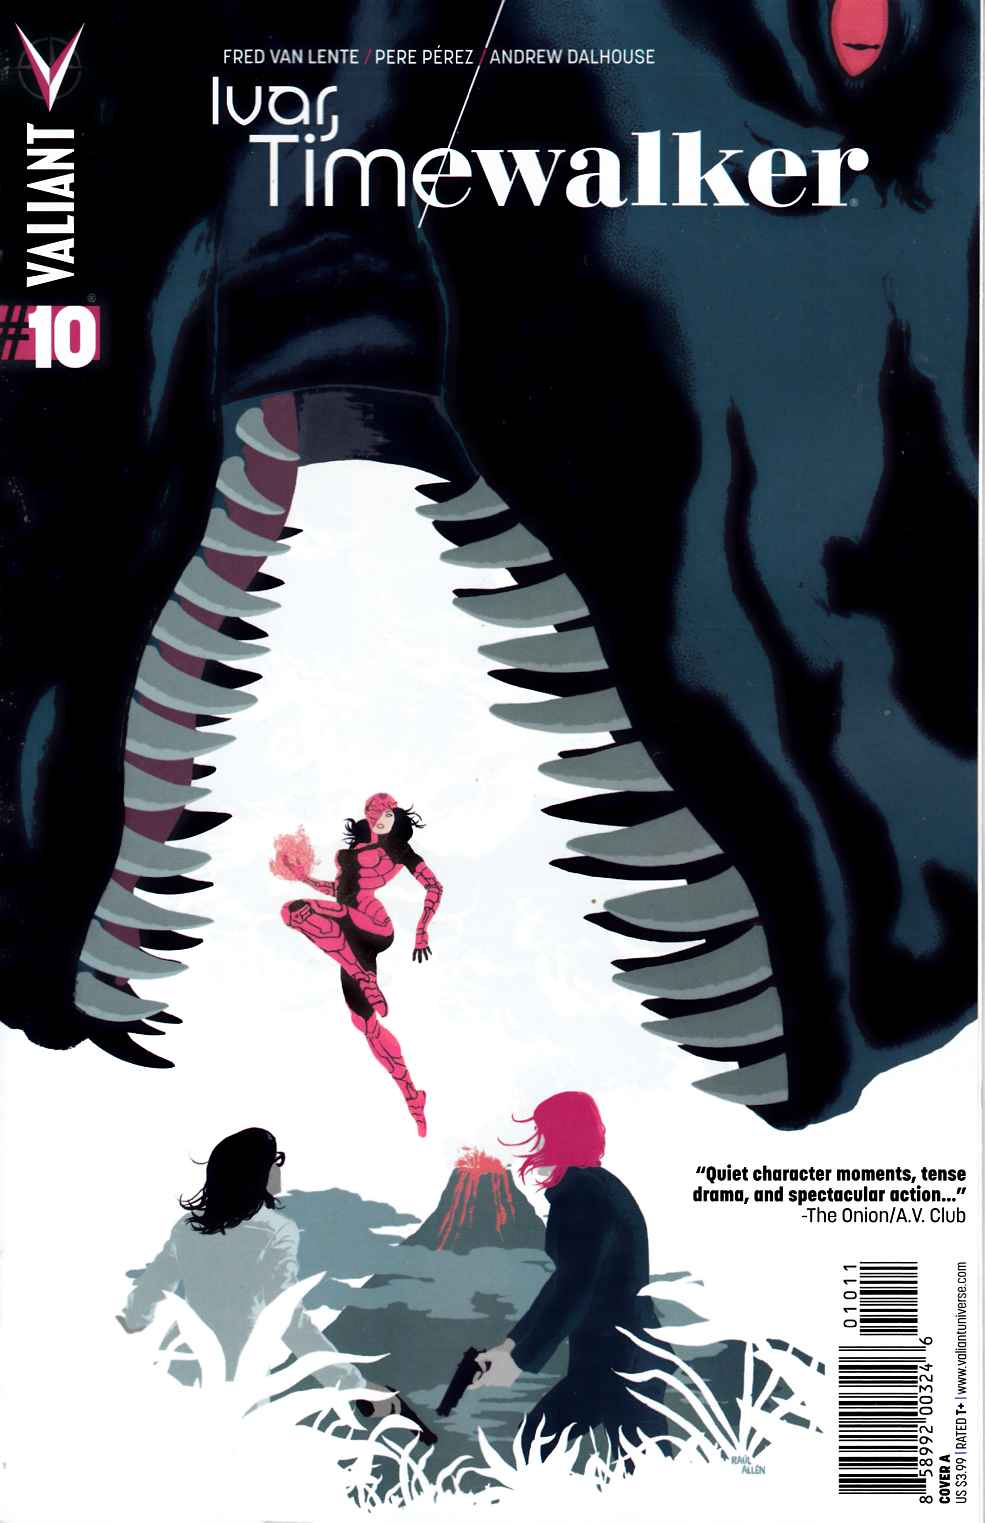 Ivar Timewalker #10 Cover A- Allen [Valiant Comic] THUMBNAIL